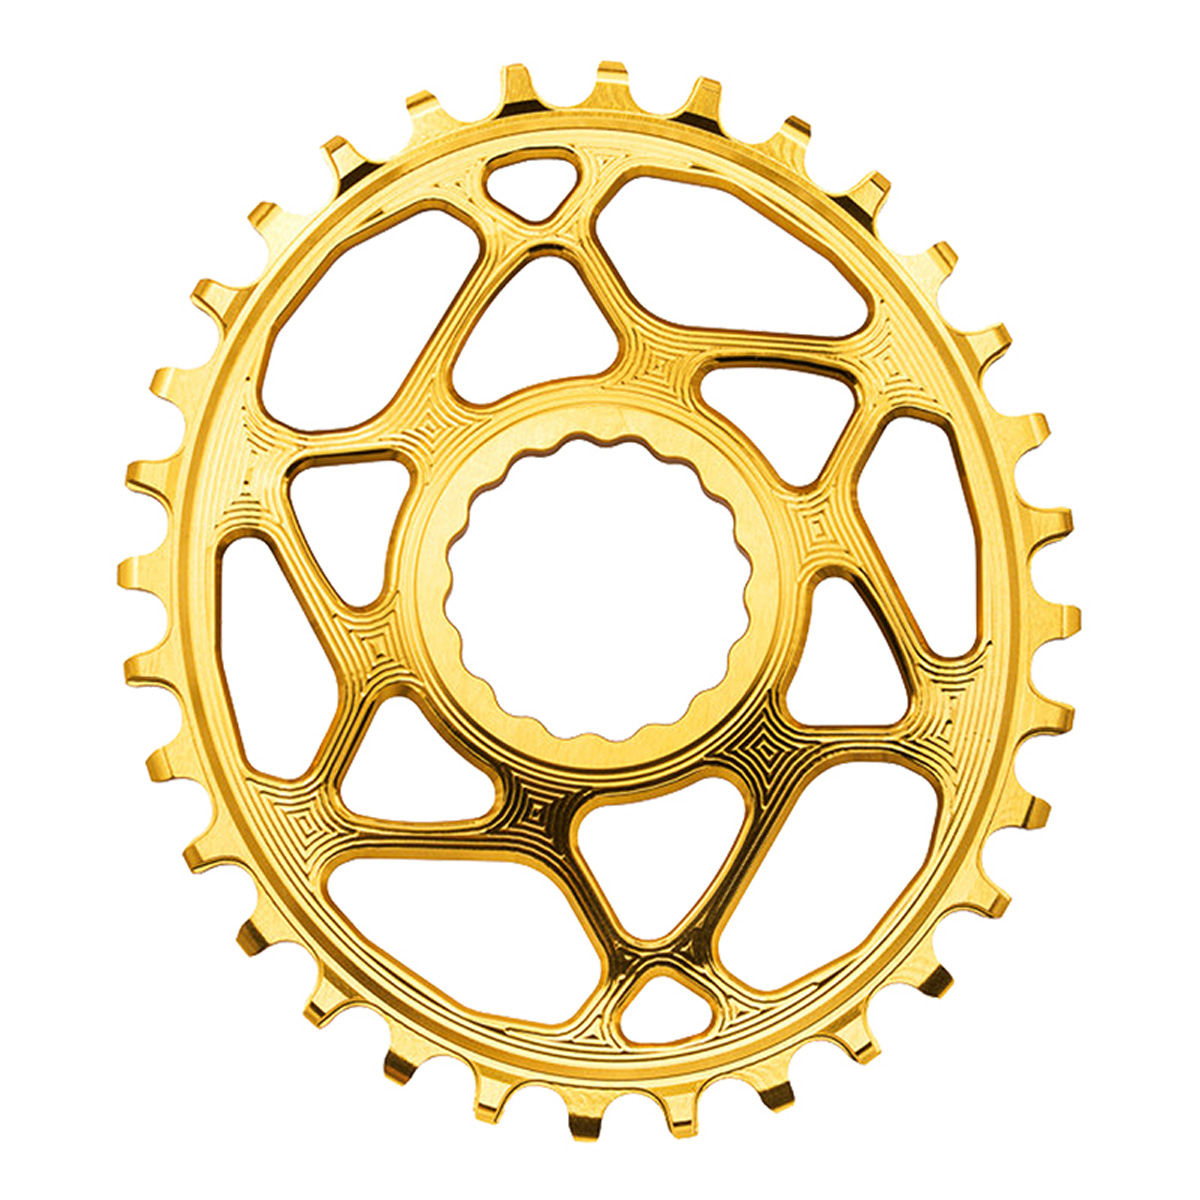 Absolute Black Oval Direct Boost 148 Bicycle Chainring - 36T (Gold - 36T)